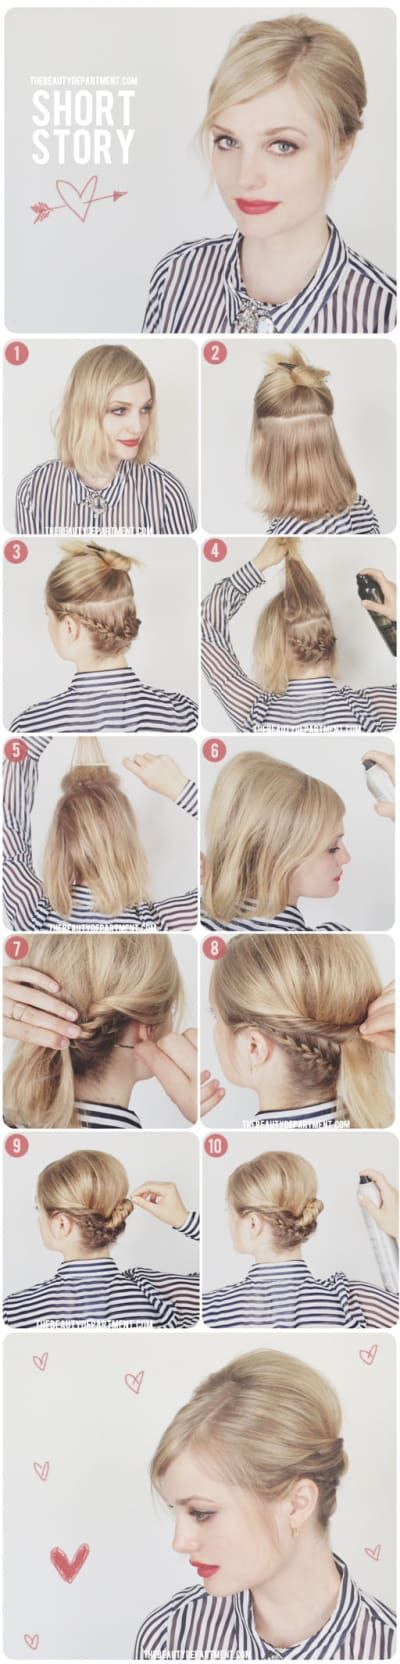 Great Styling Ideas for Short Hairstyles 2017 Bobby_Pins_Make_Crown_Braid_5-1